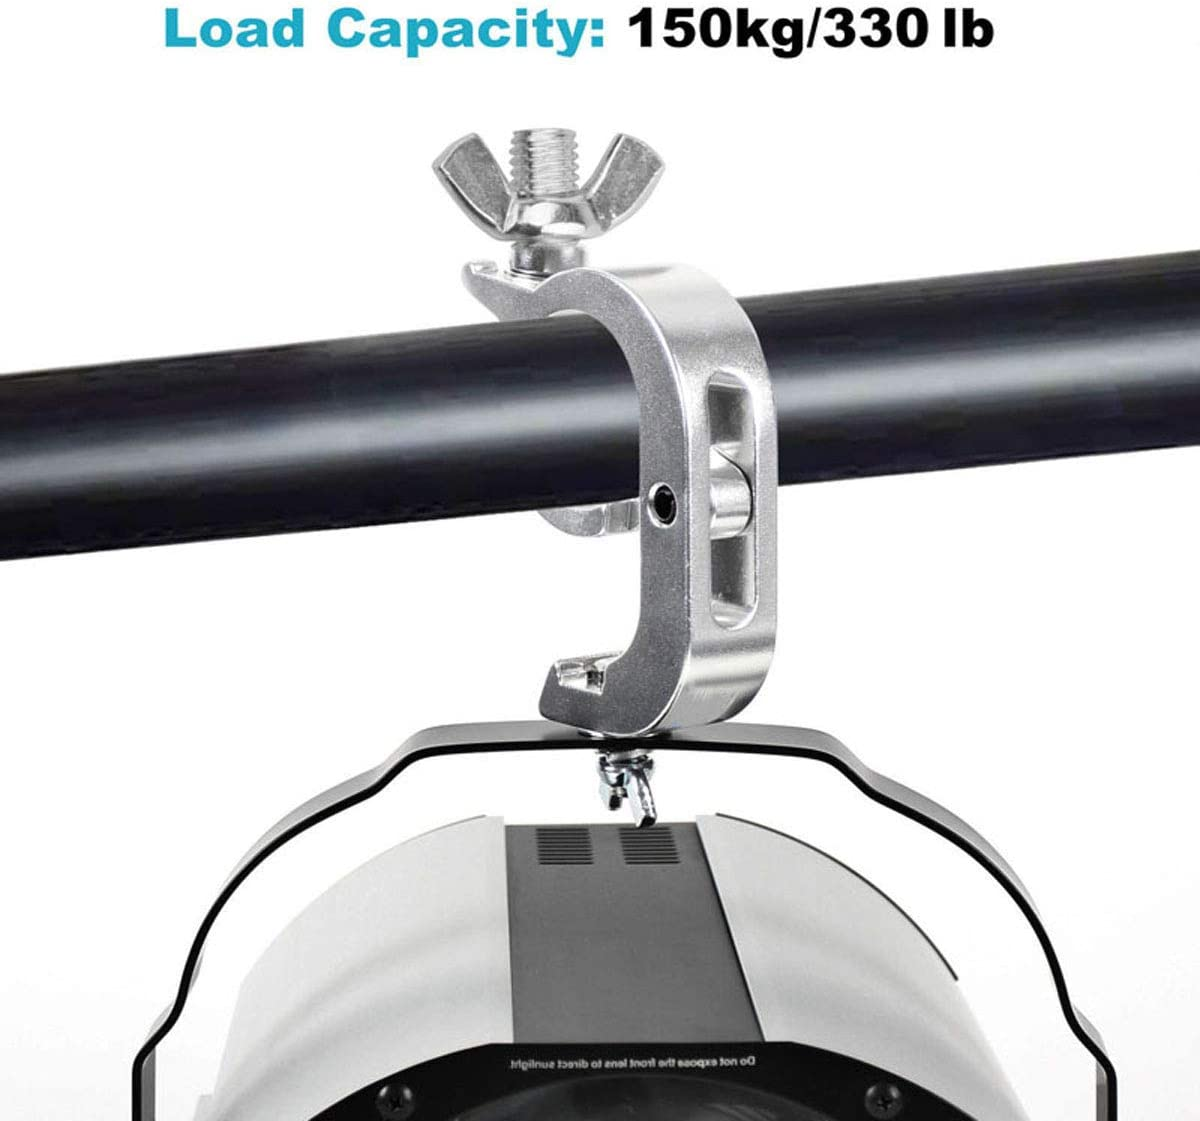 GBGS 2 inches 330 lbs Load-bearing Hook Quick Lock//Release Stage Lighting Truss Clamps 4 Pack Heavy Duty Aluminum Alloy for 1 7//8-2 1//16 Inch Pipe